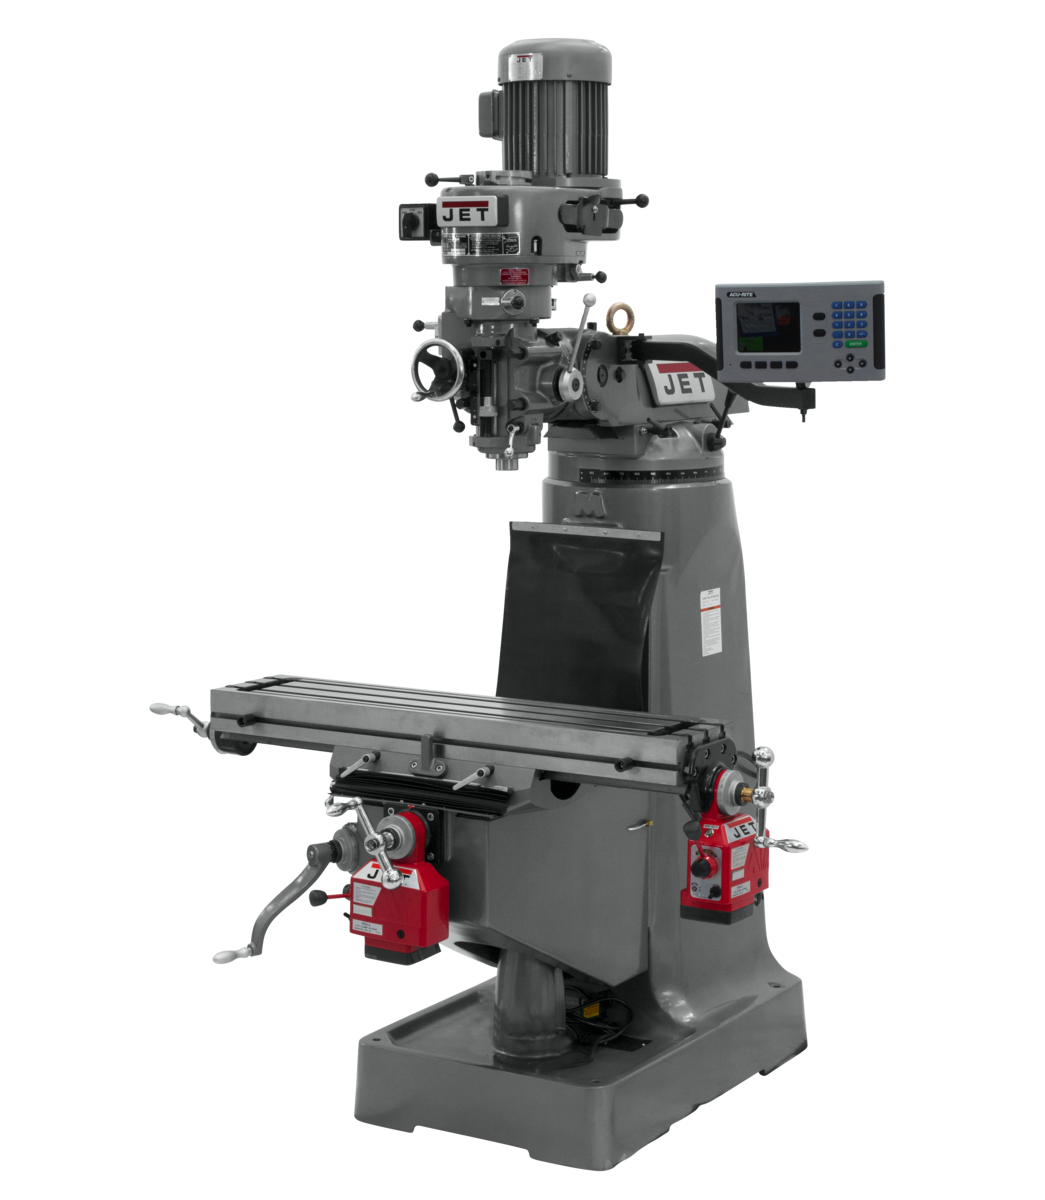 JTM-2 Mill With 3-Axis ACU-RITE 203 DRO (Quill) With X and Y-Axis Powerfeeds